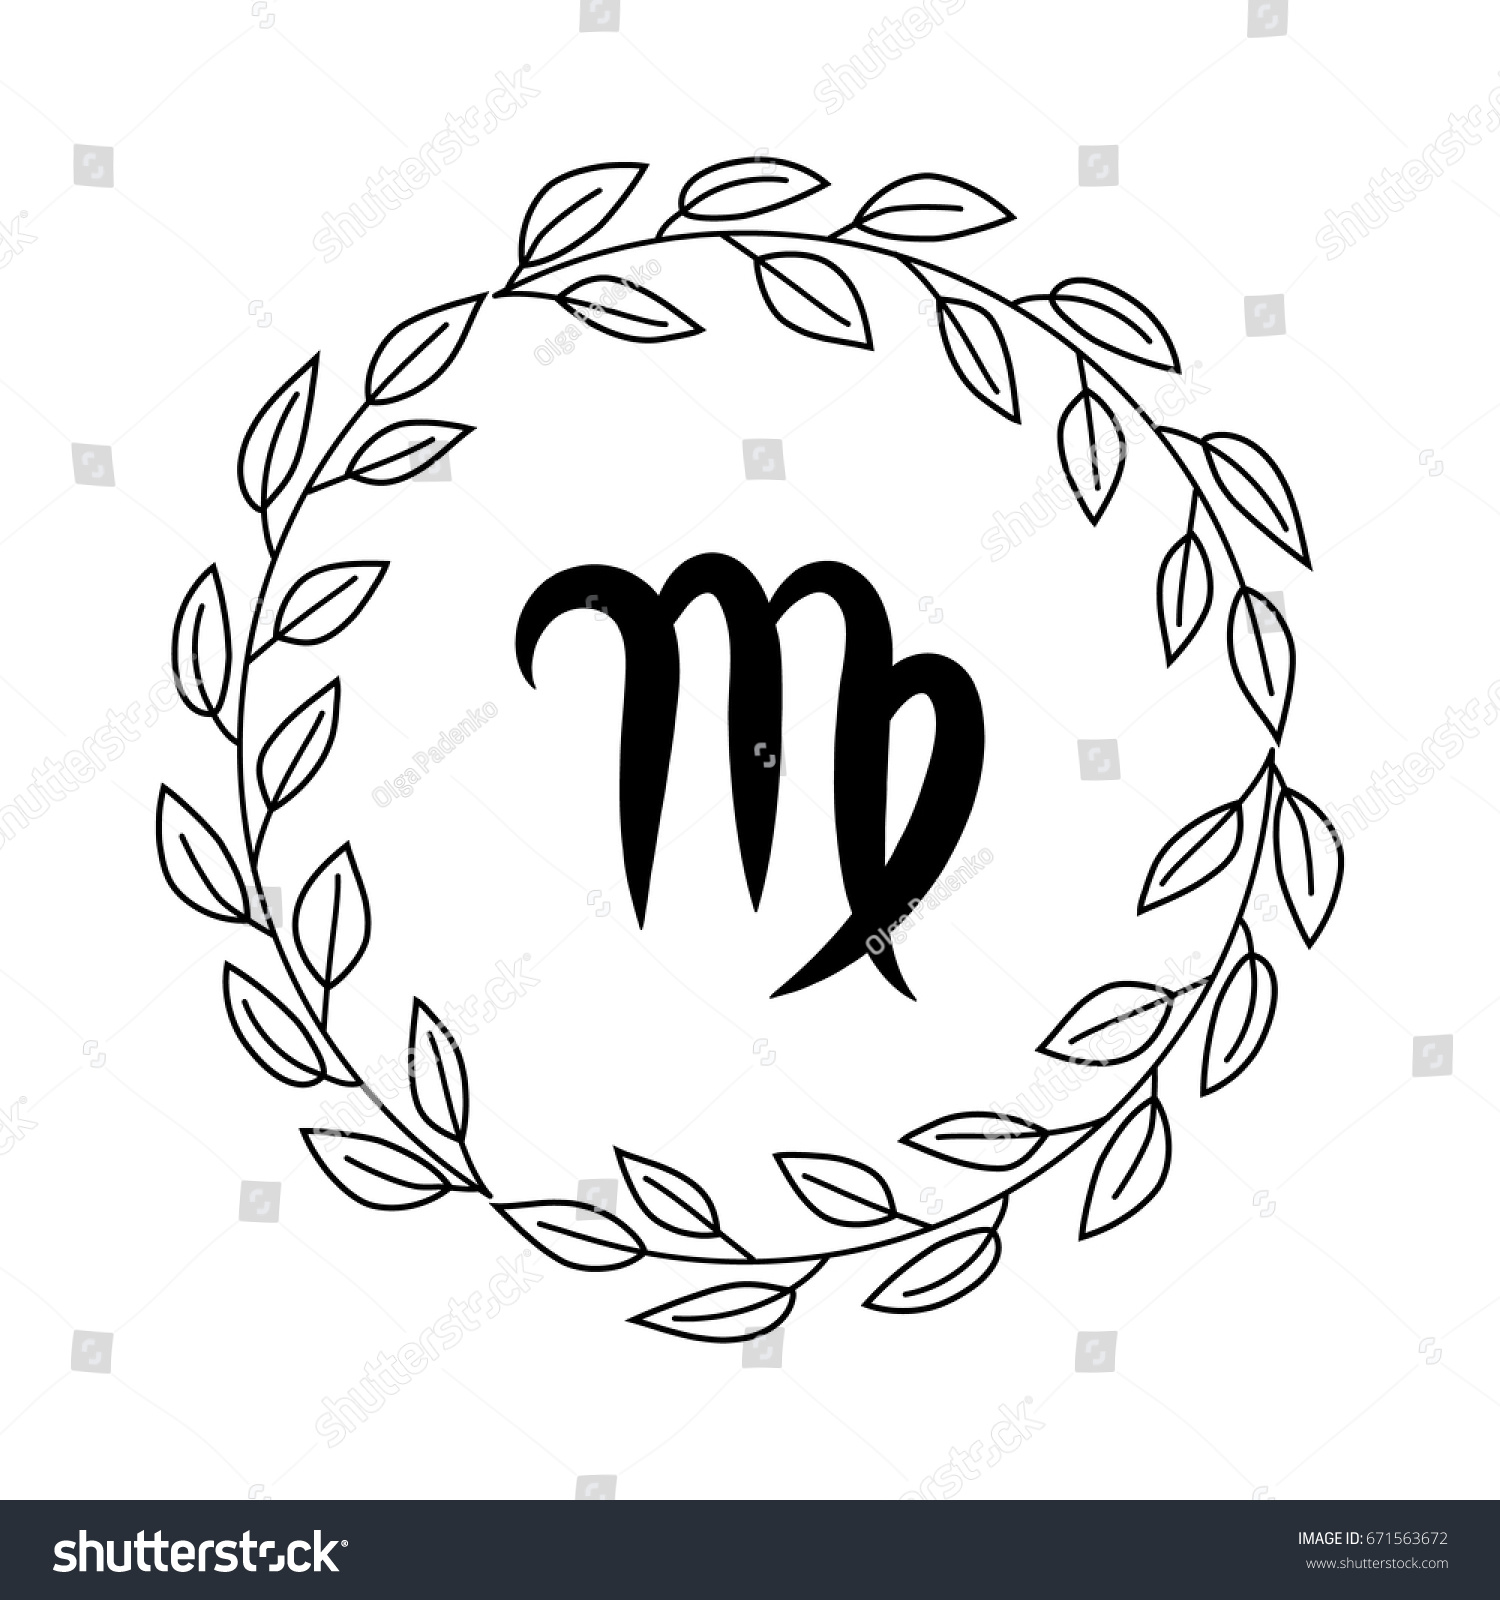 Hand drawing flat virgo symbol rustic stock vector 671563672 hand drawing flat virgo symbol in rustic floral wreath buycottarizona